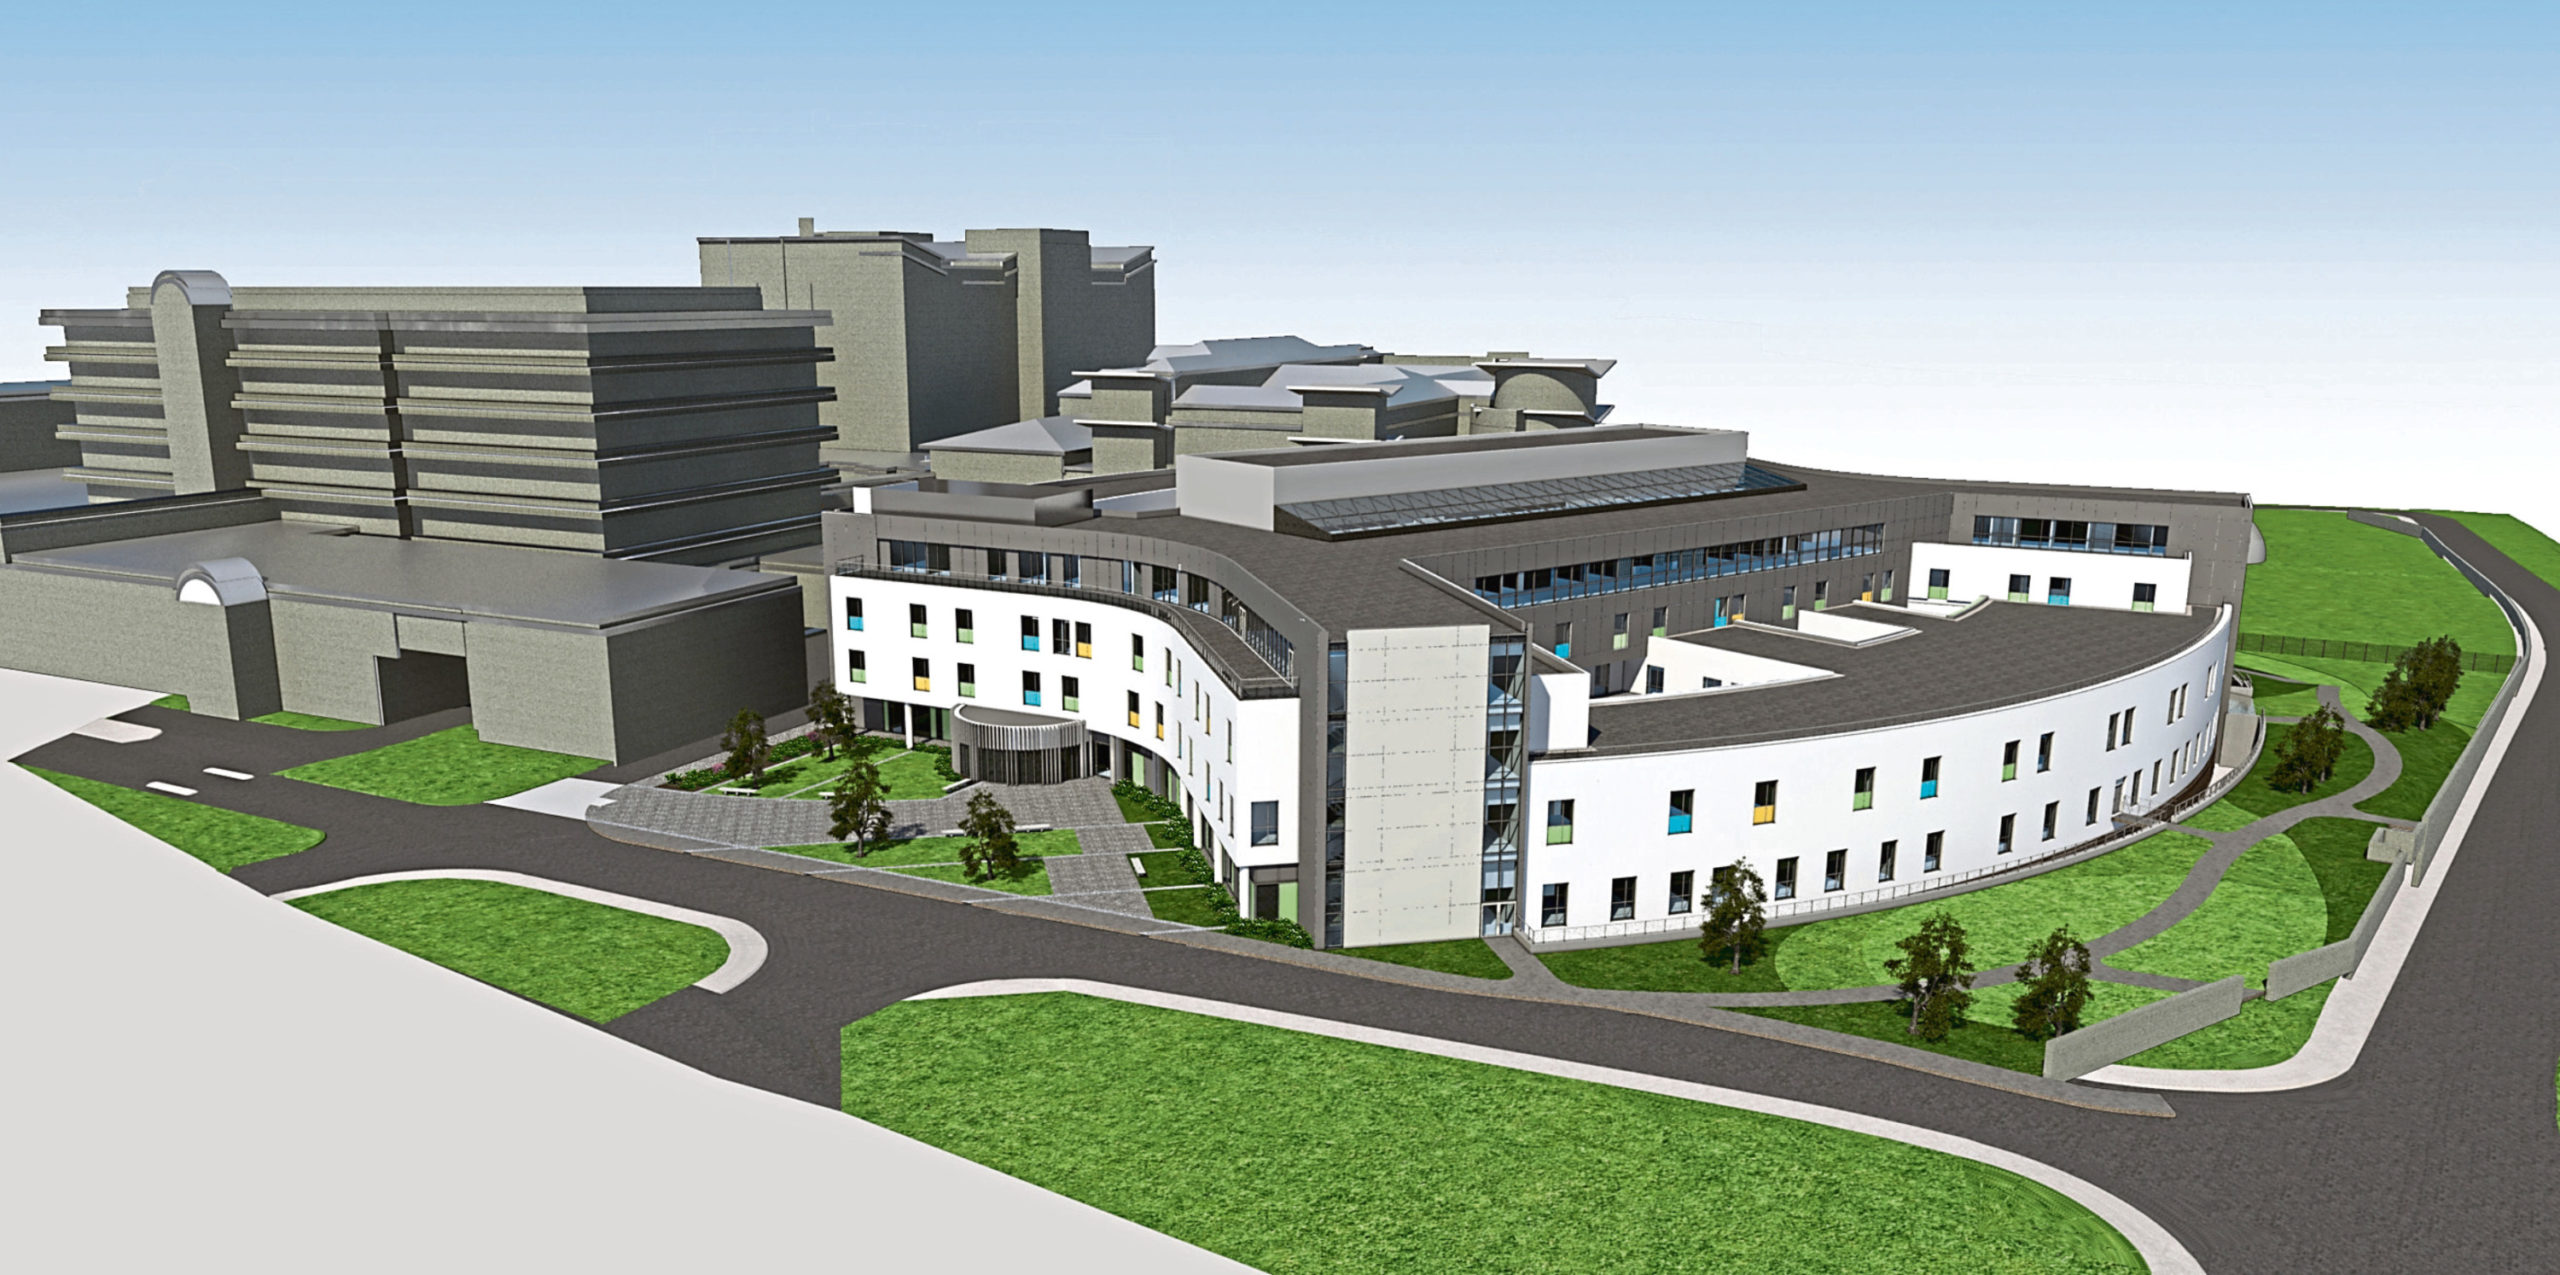 How the Baird Family Hospital would look